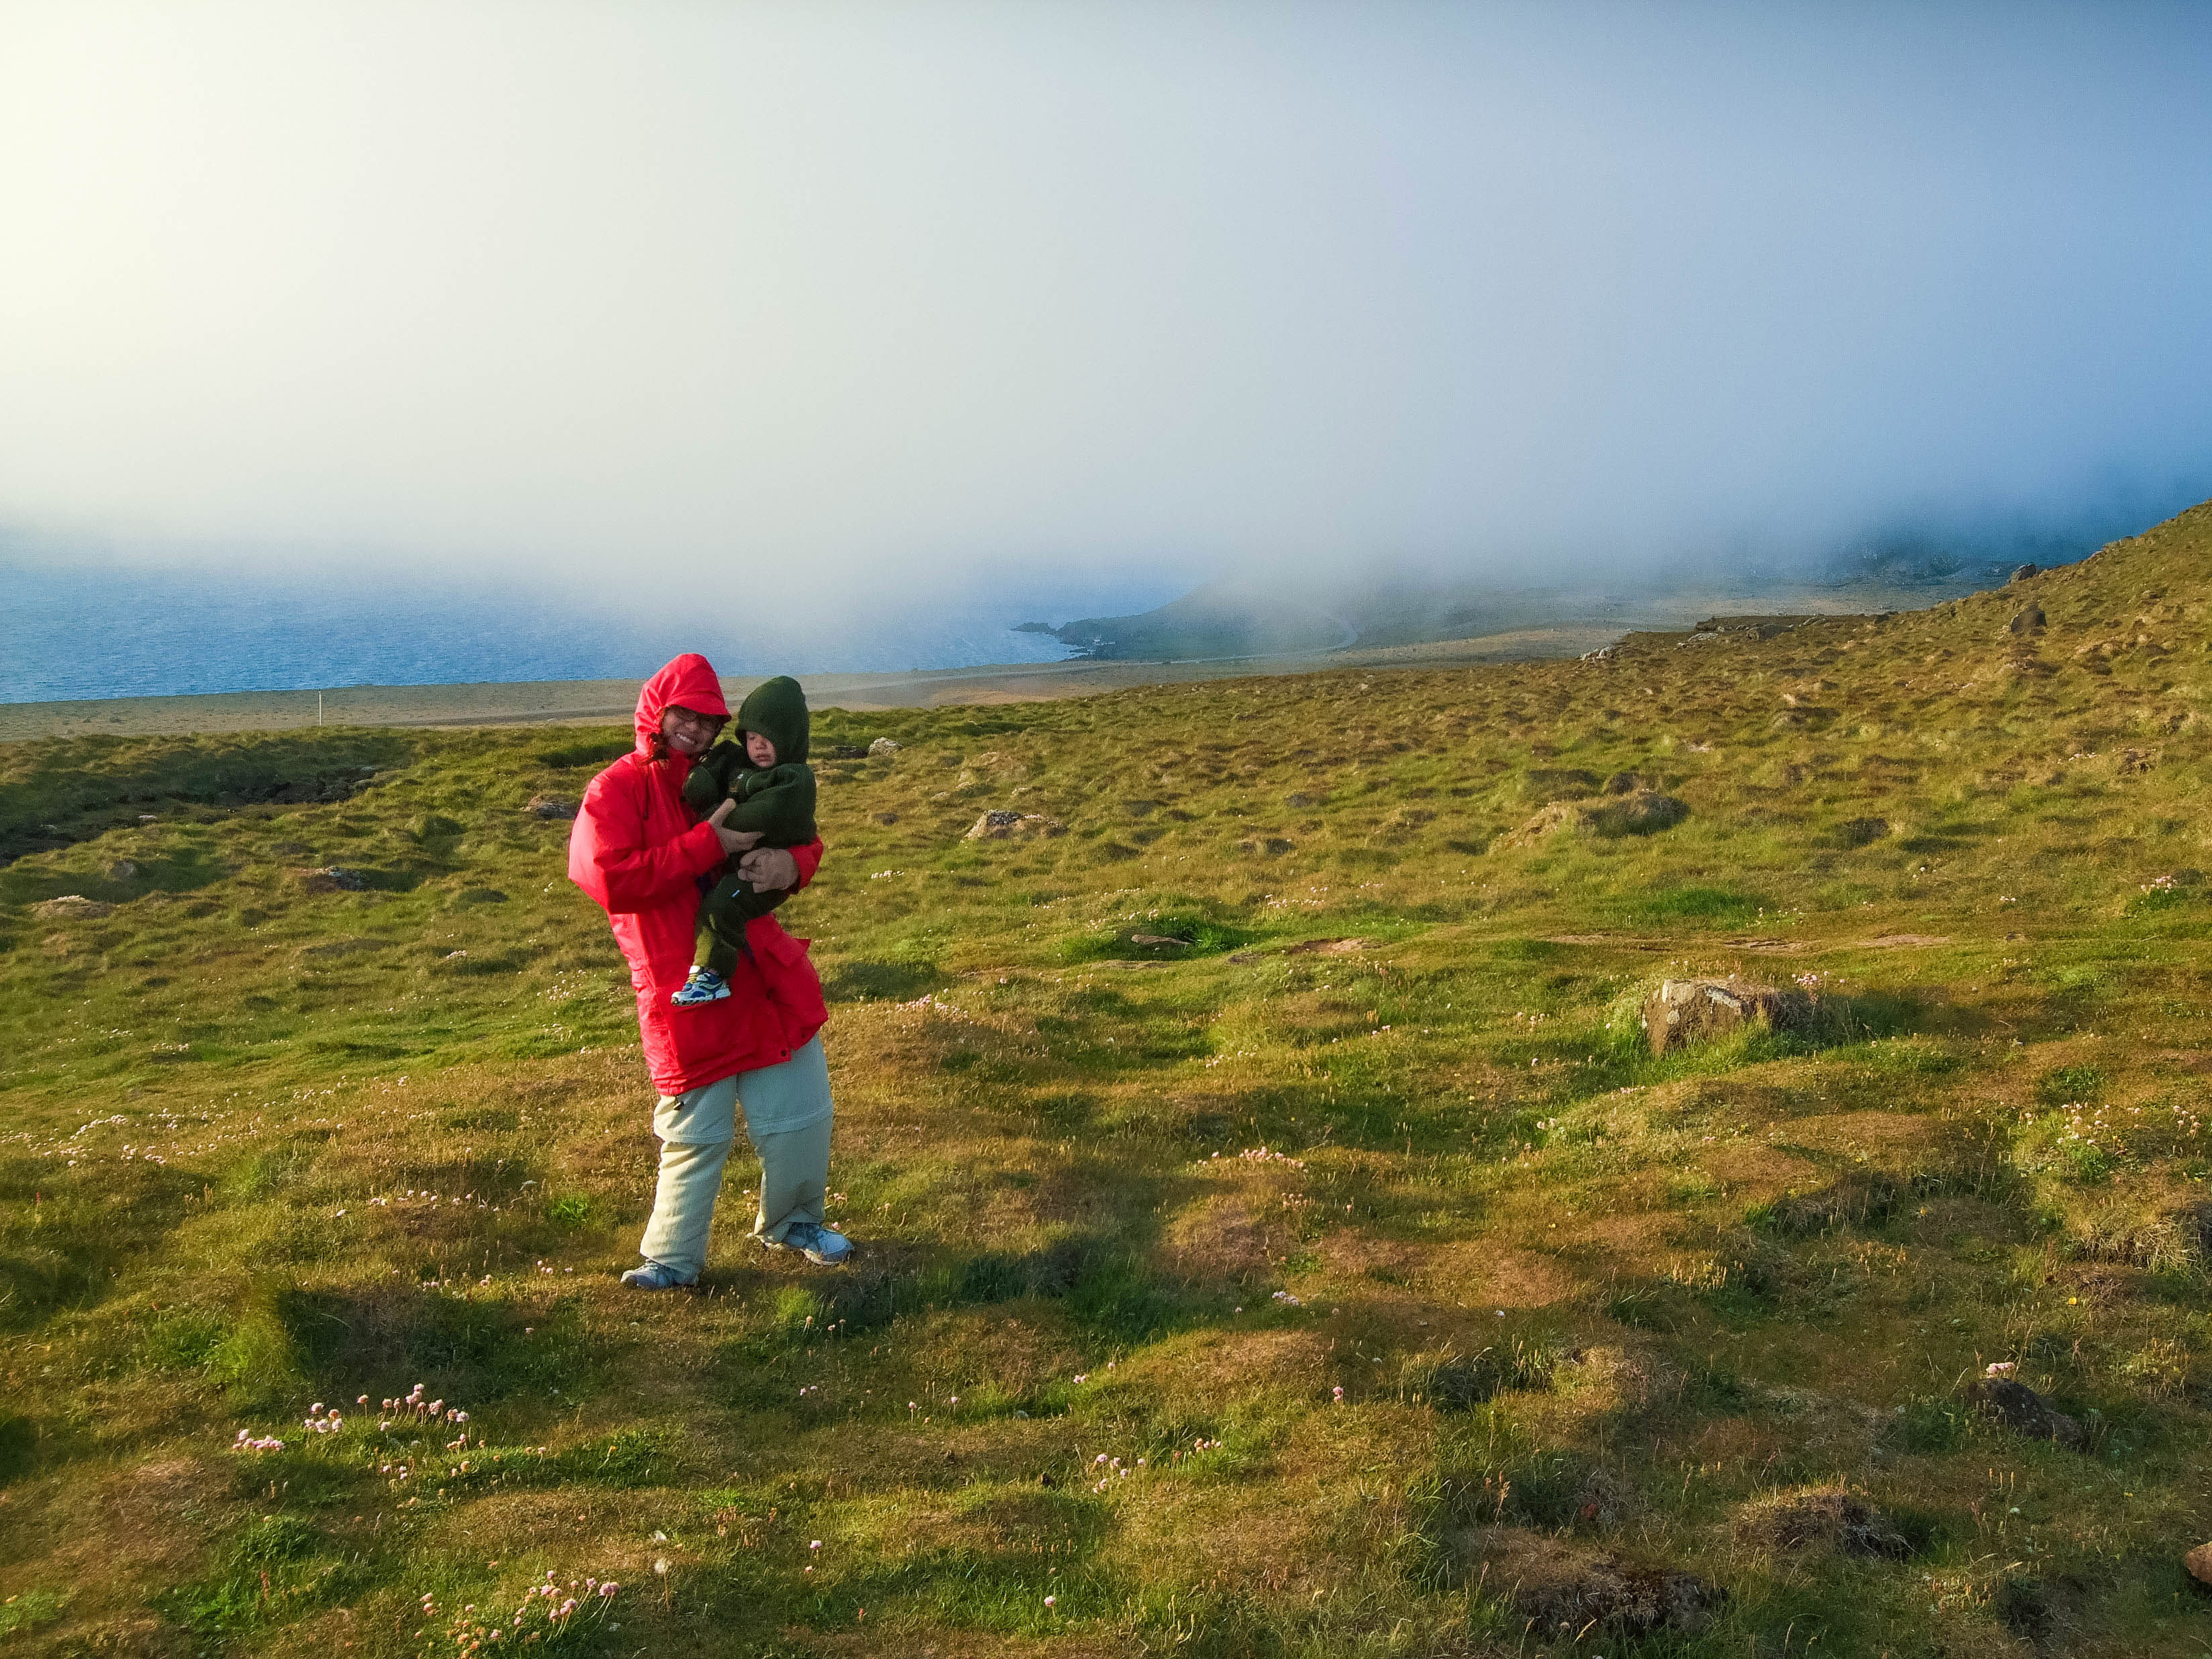 A mother and son brace against the wind as they experience one of the family friendly hikes in Iceland along the Latrabjarg Bird Cliffs in Icelands Westfjords